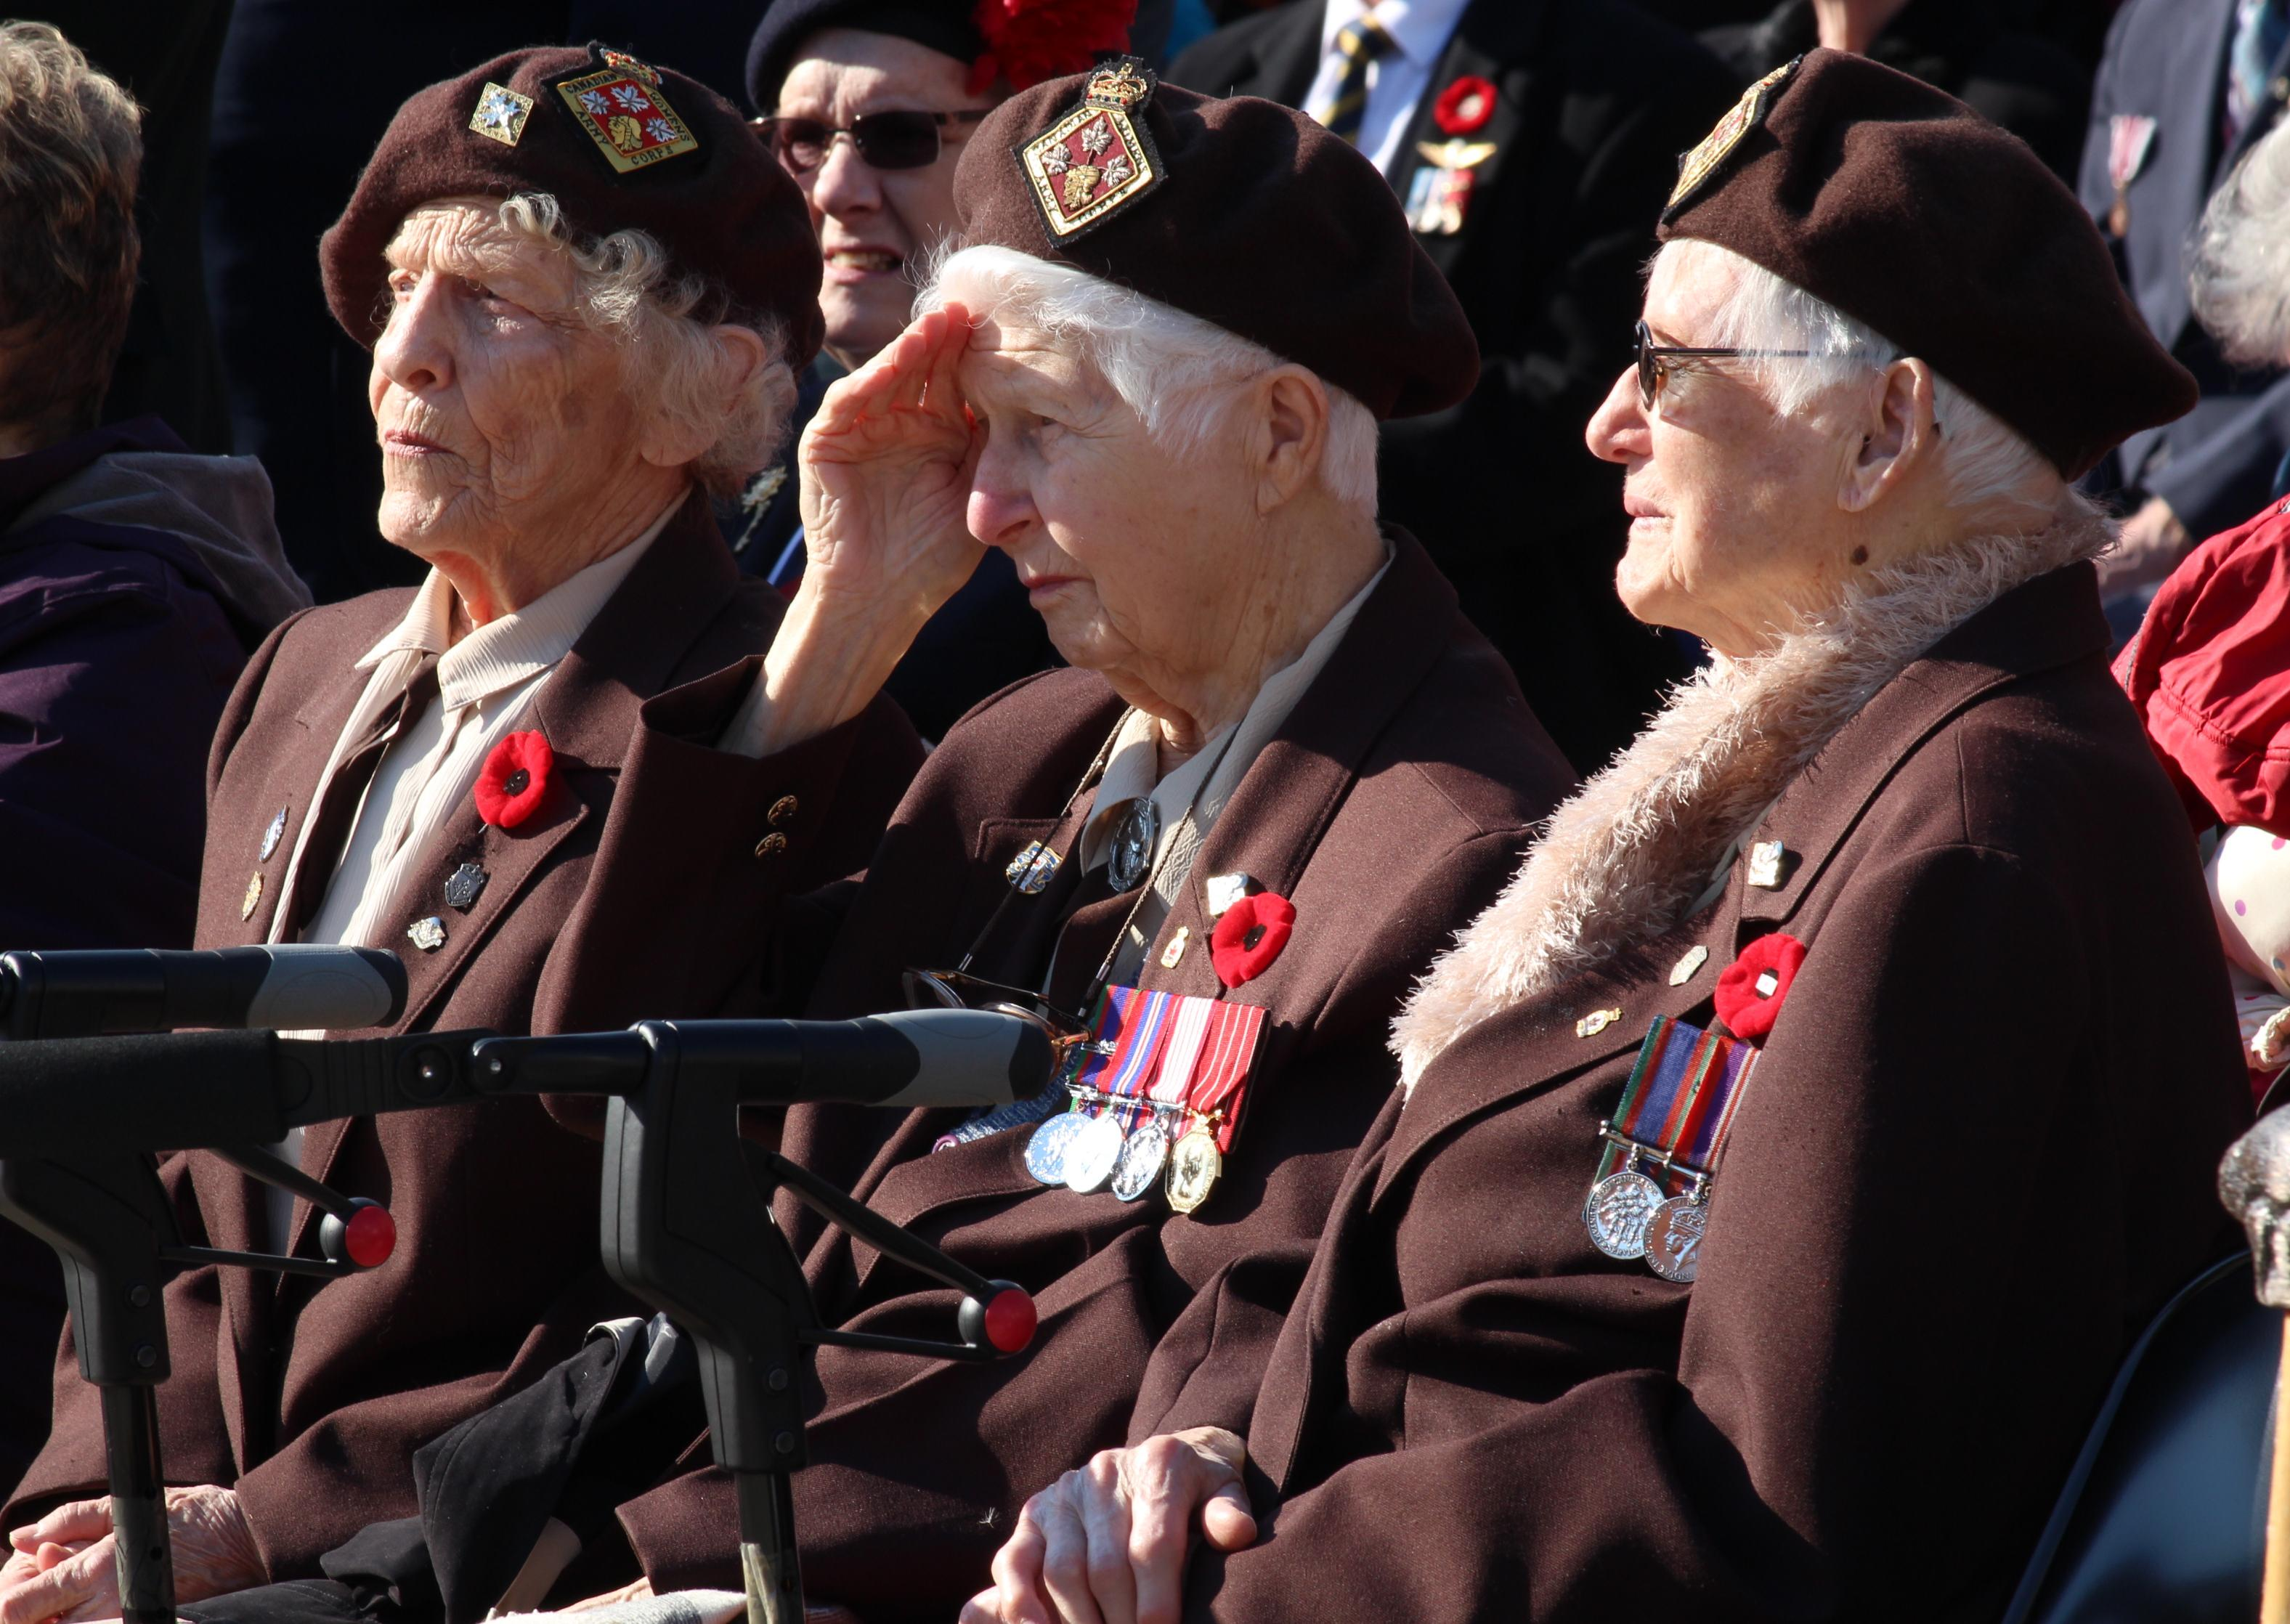 Veterans honoured at Remembrance Day ceremonies at the cenotaph in Windsor, November 11, 2014. (photo by Mike Vlasveld)